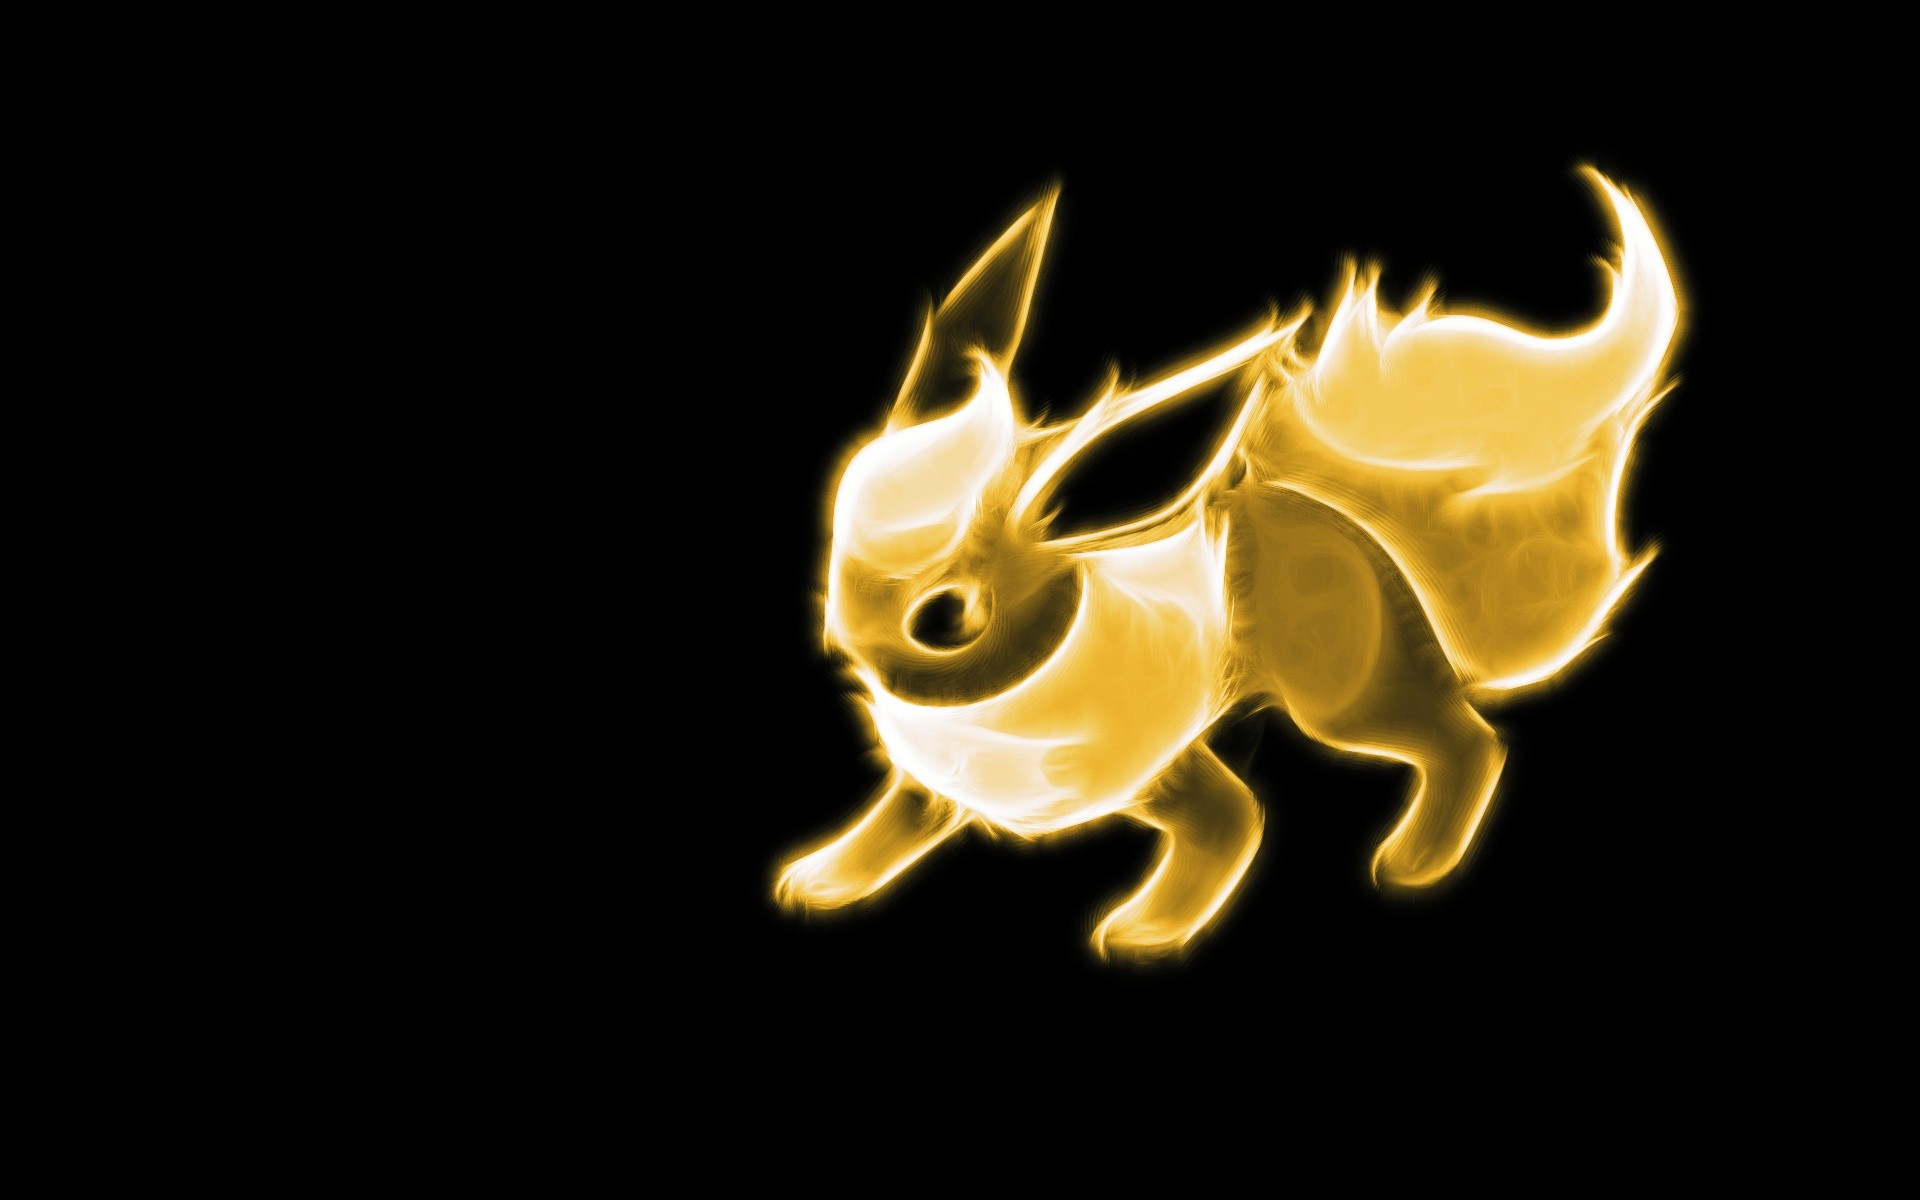 1920x1200 Pokemon Flareon Wallpaper  Pokemon, Flareon, Black .